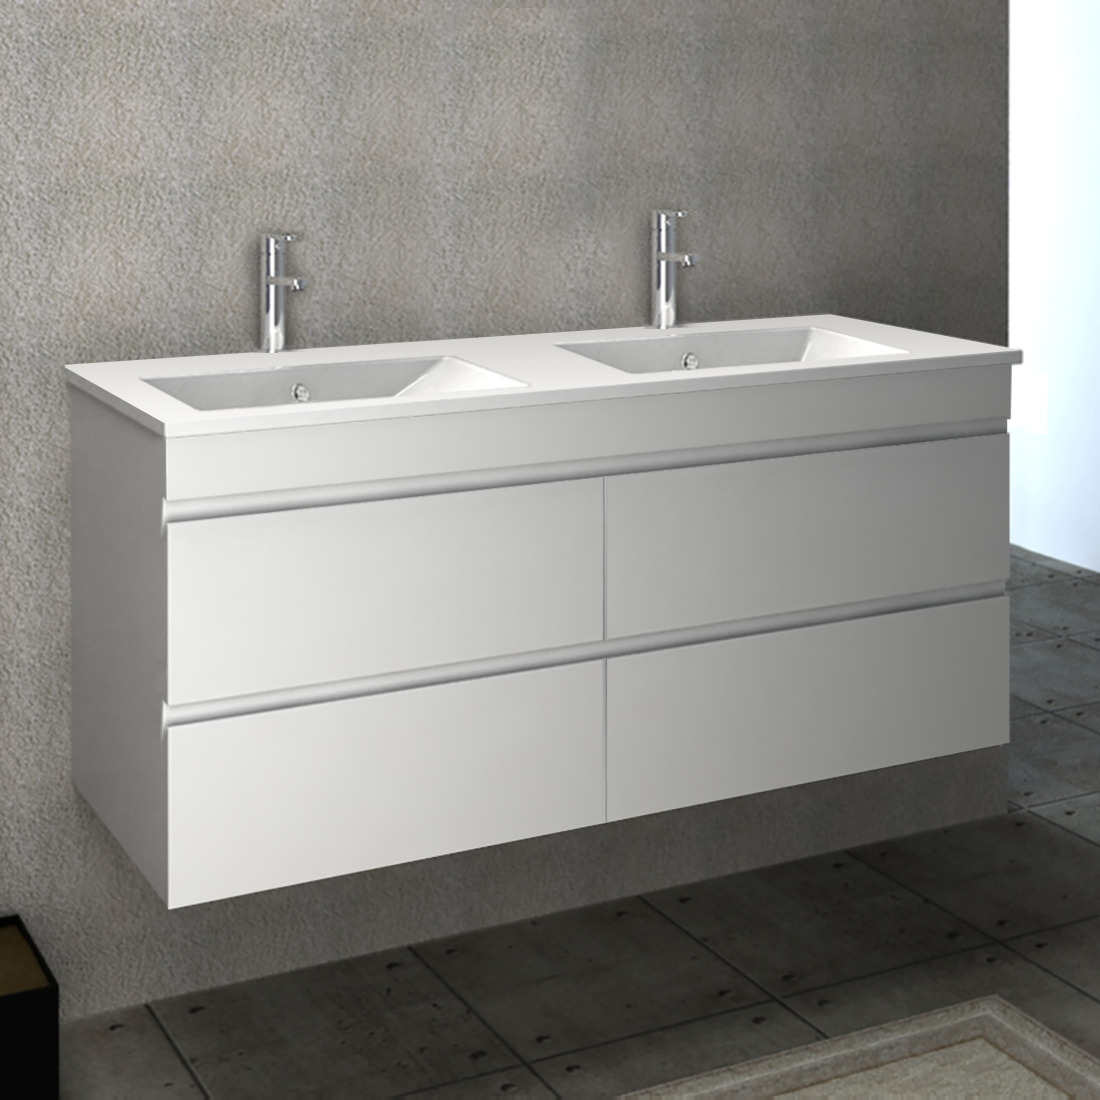 1500 Bathroom Vanity Vellena Wall Hung 1500 Pvc Water Proof Bathroom Vanity